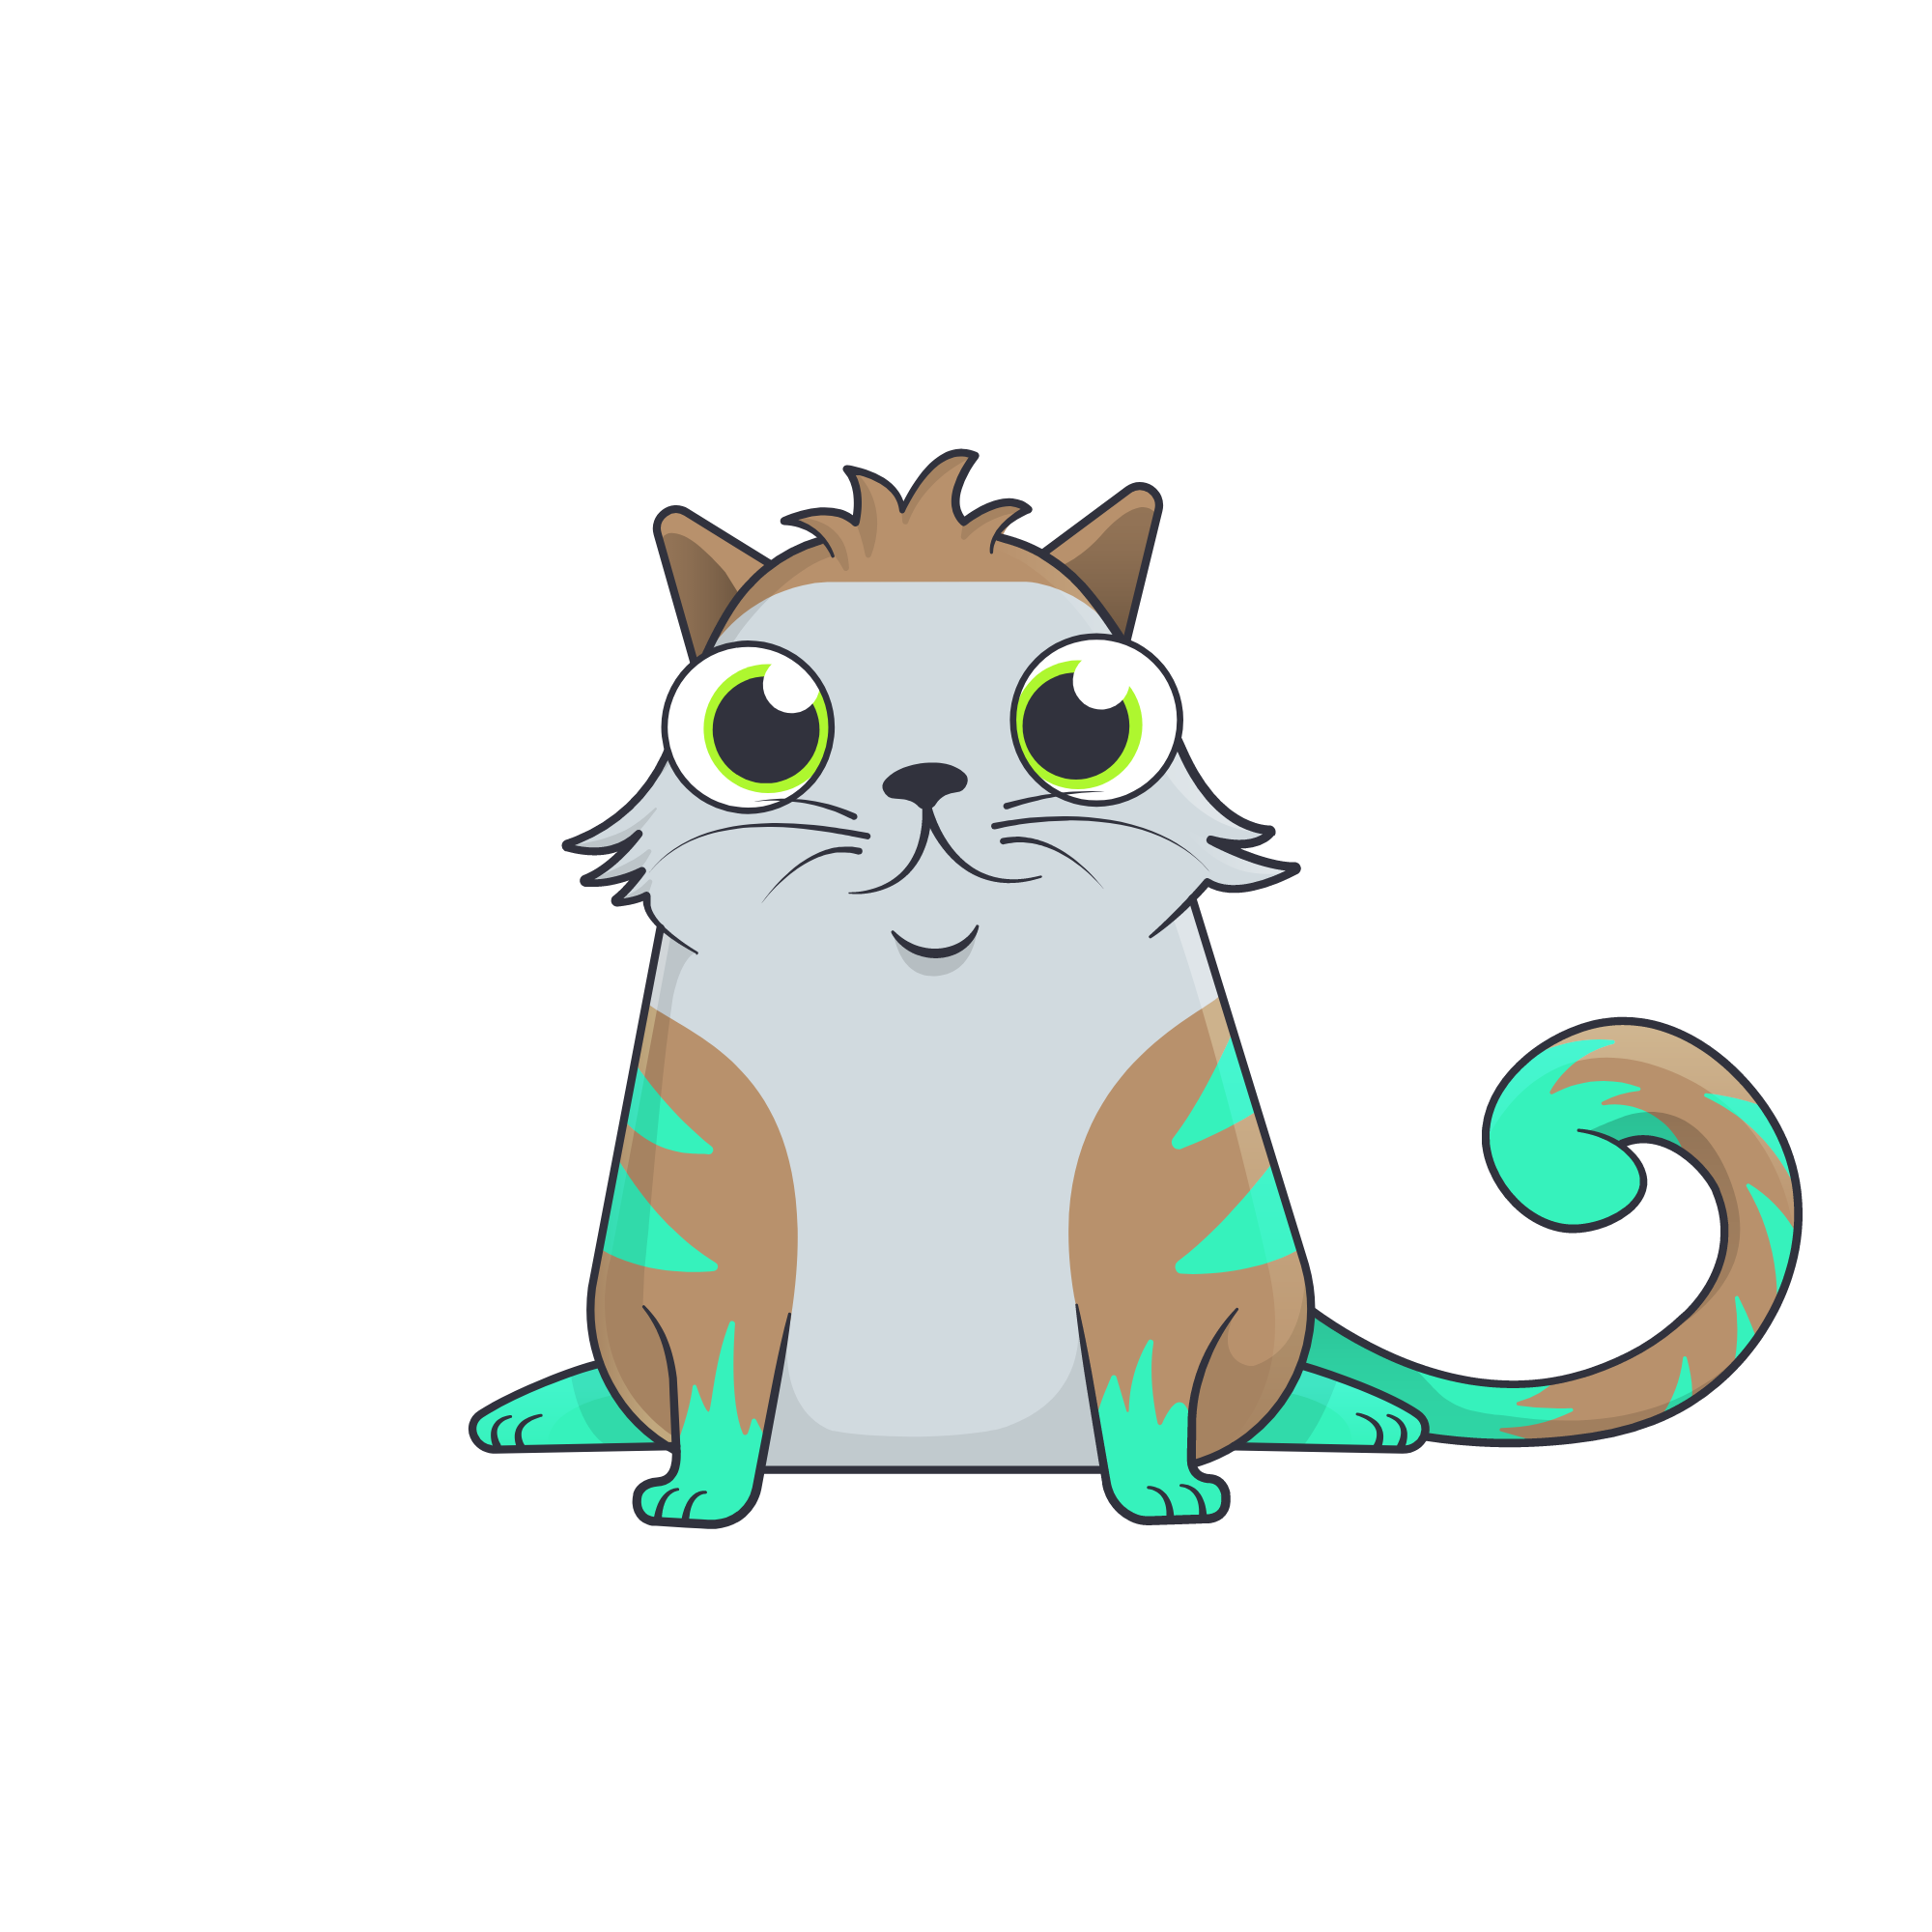 cryptokitty #1424060